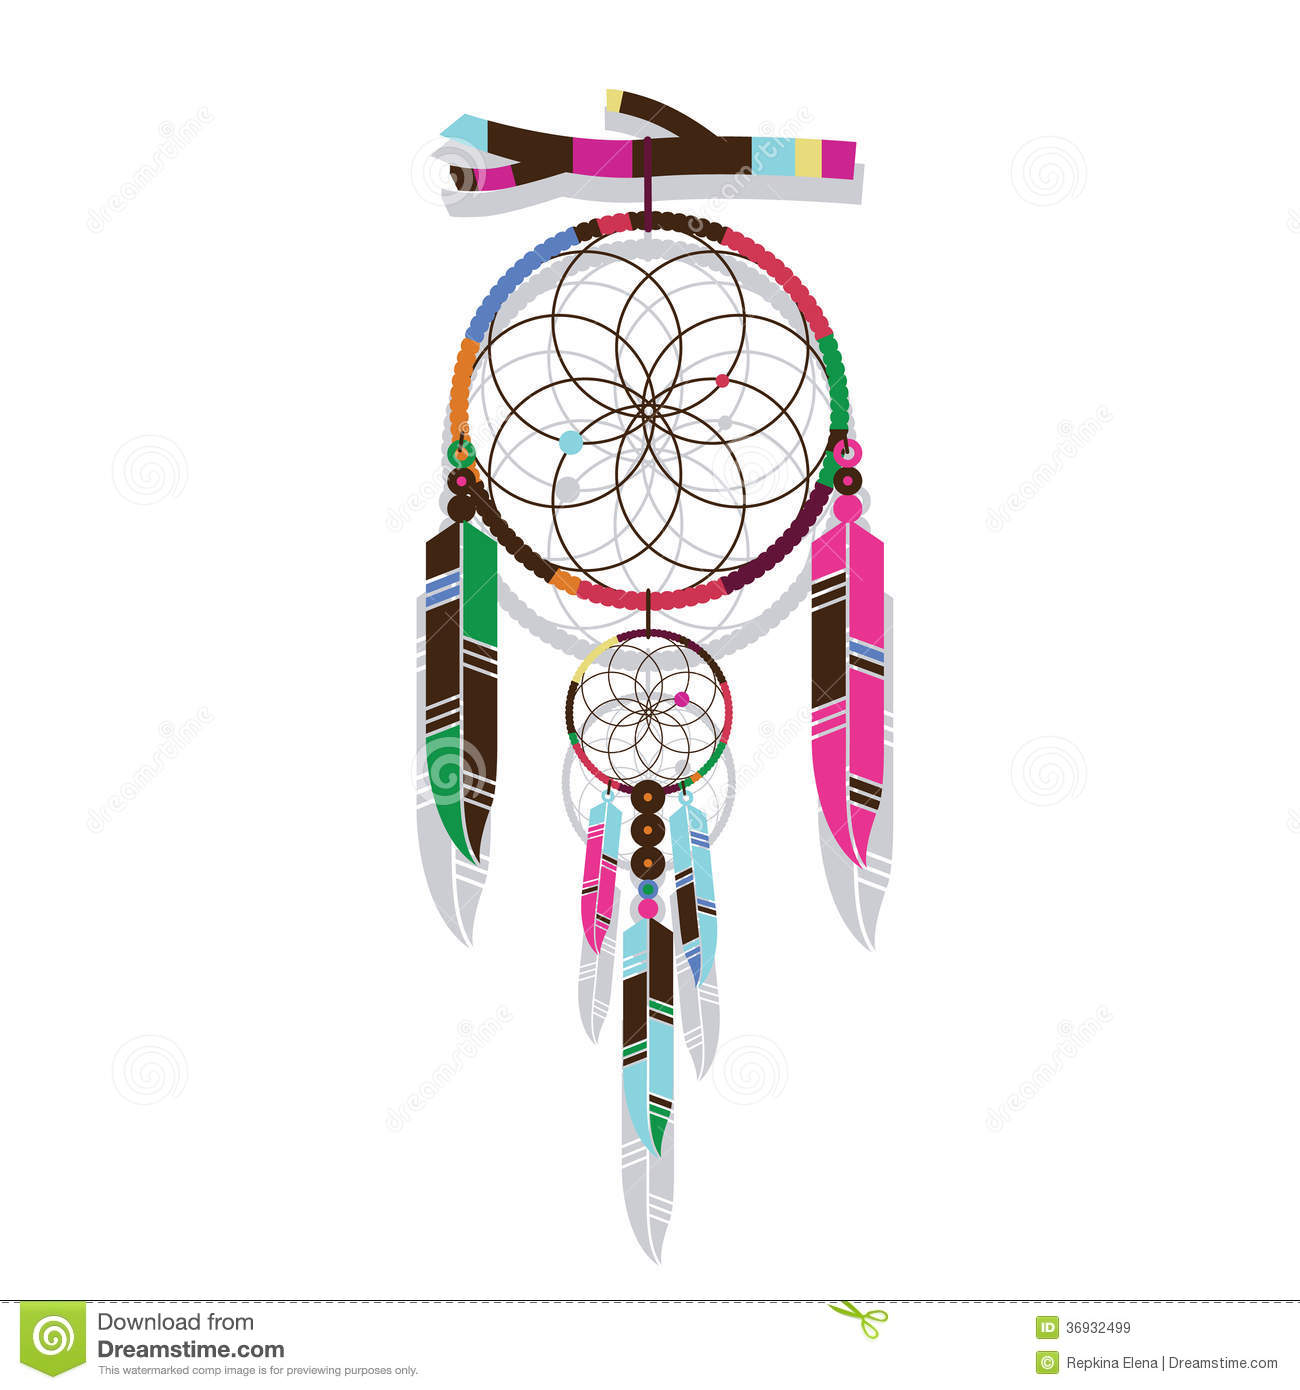 Magic dreamcatcher royalty free stock images image 36932499 for Dream catcher graphic